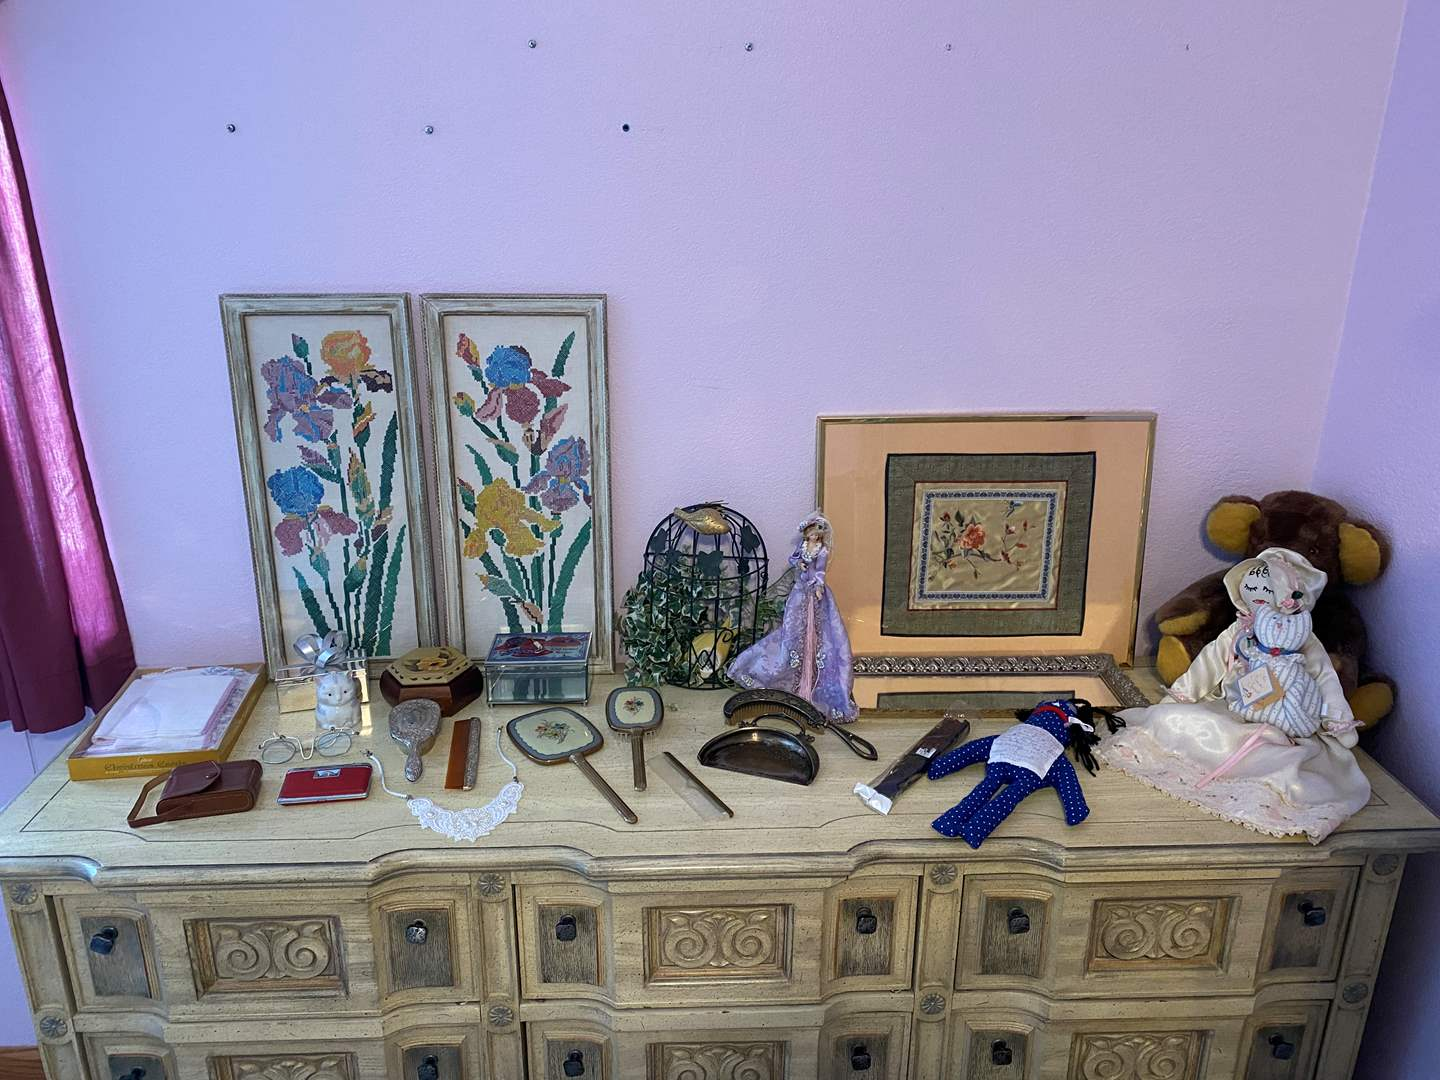 Lot # 164 - Vintage Mirrors, Brushes, Table Crumb Broom & Pan, Hand Stitched Art, Trinket Boxes, Dolls & More (main image)